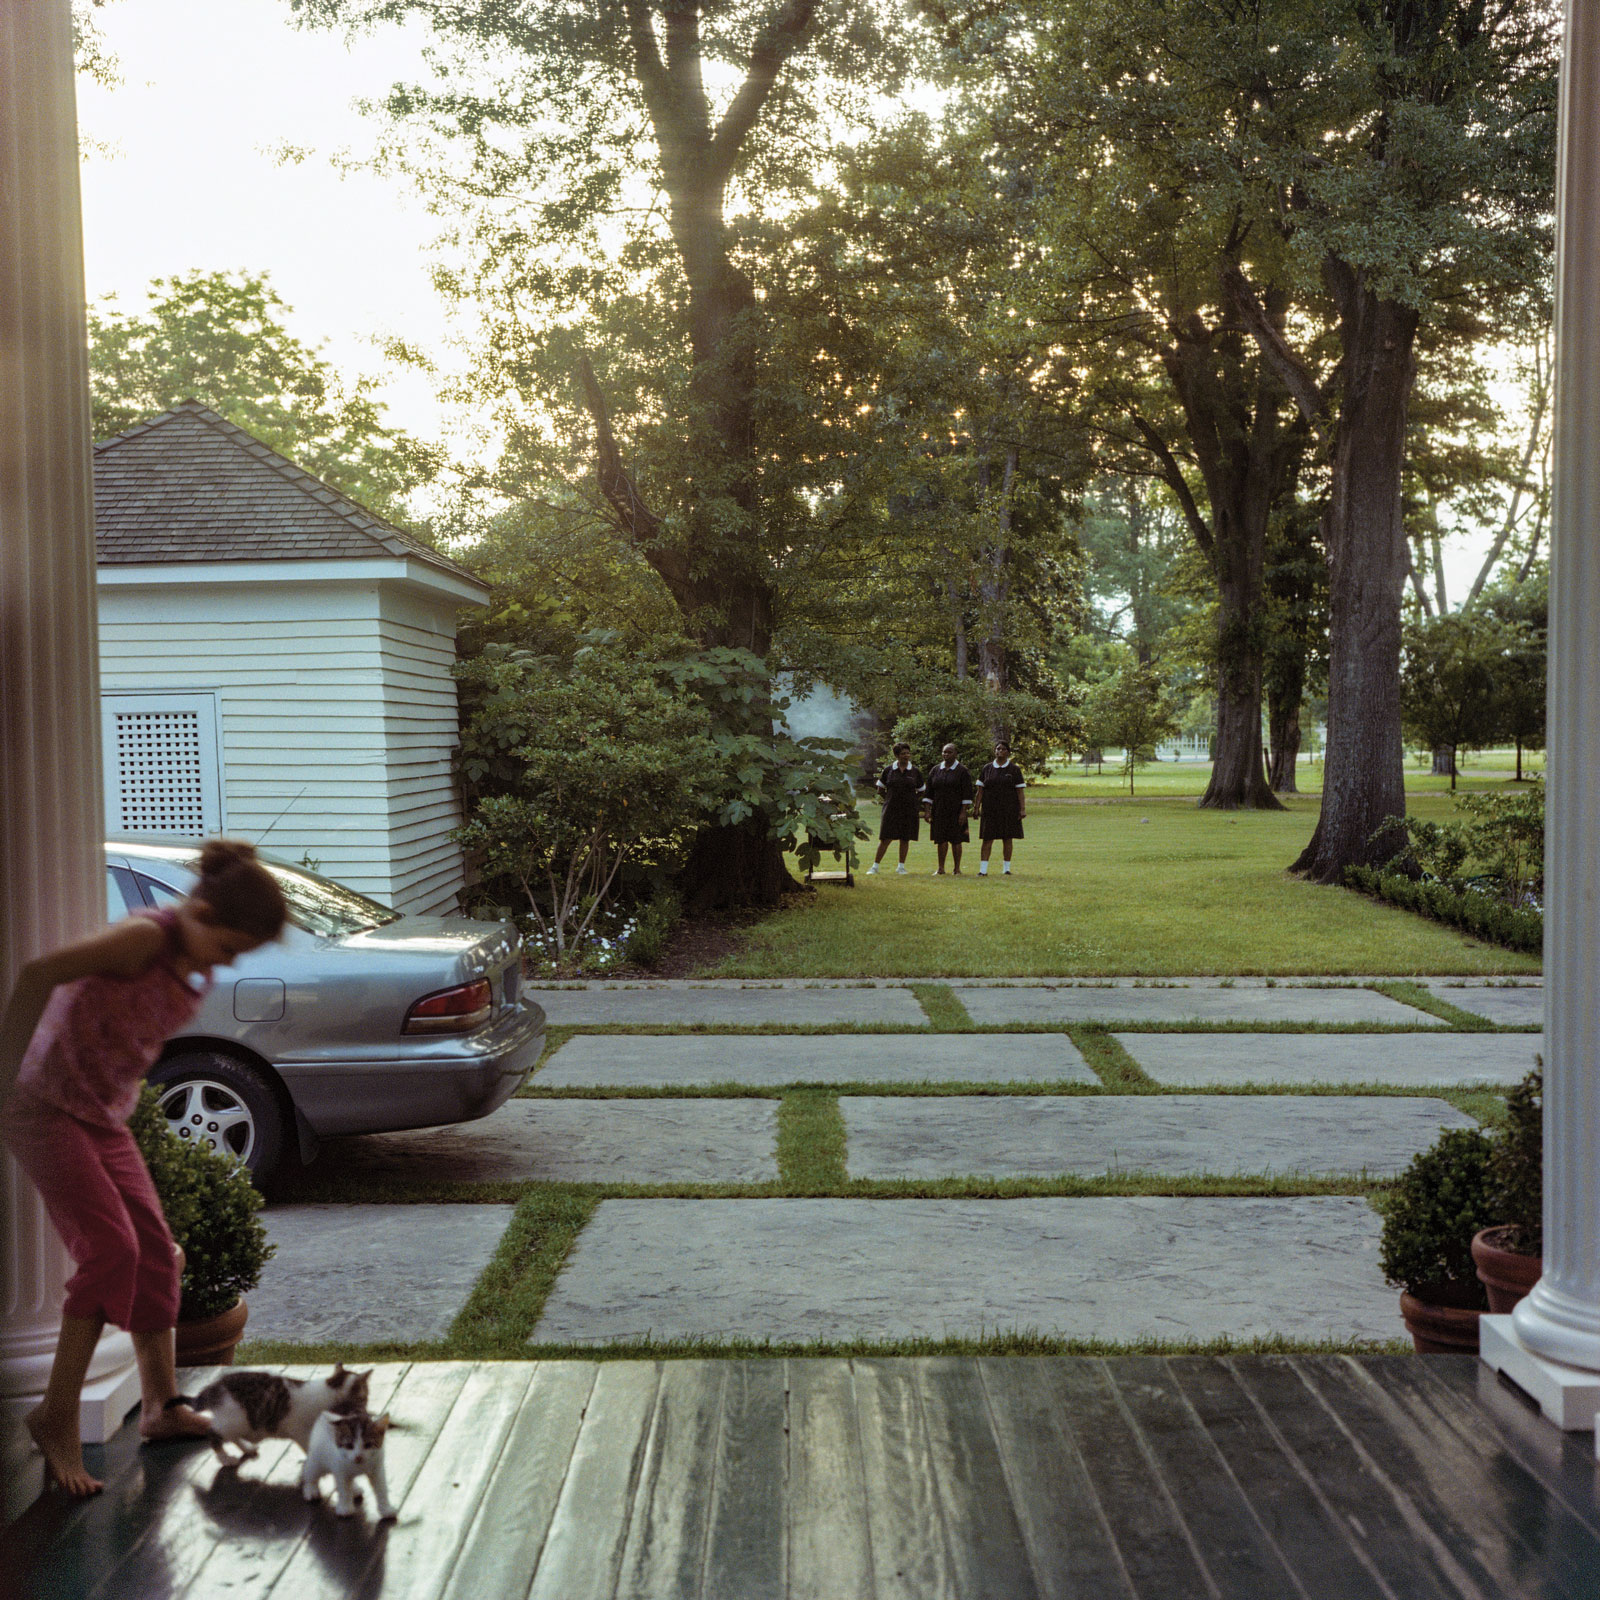 <i>Sophie with Kittens, Sumner, Mississippi</i> (2000) by Maude Schuyler Clay